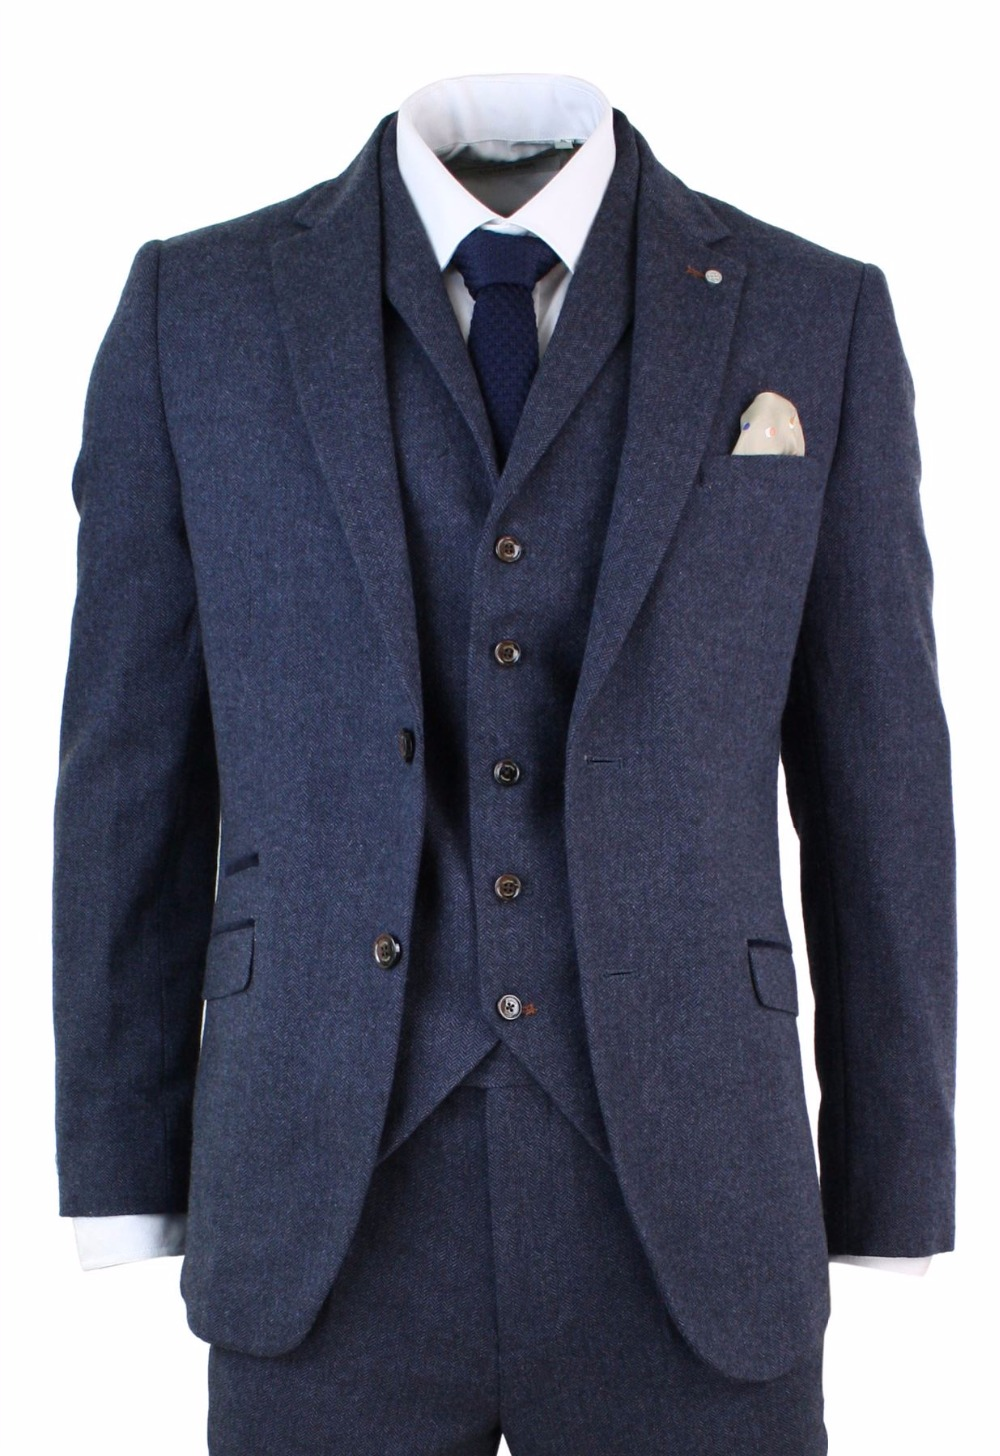 Navy Tweed Suit Promotion-Shop for Promotional Navy Tweed Suit on ...